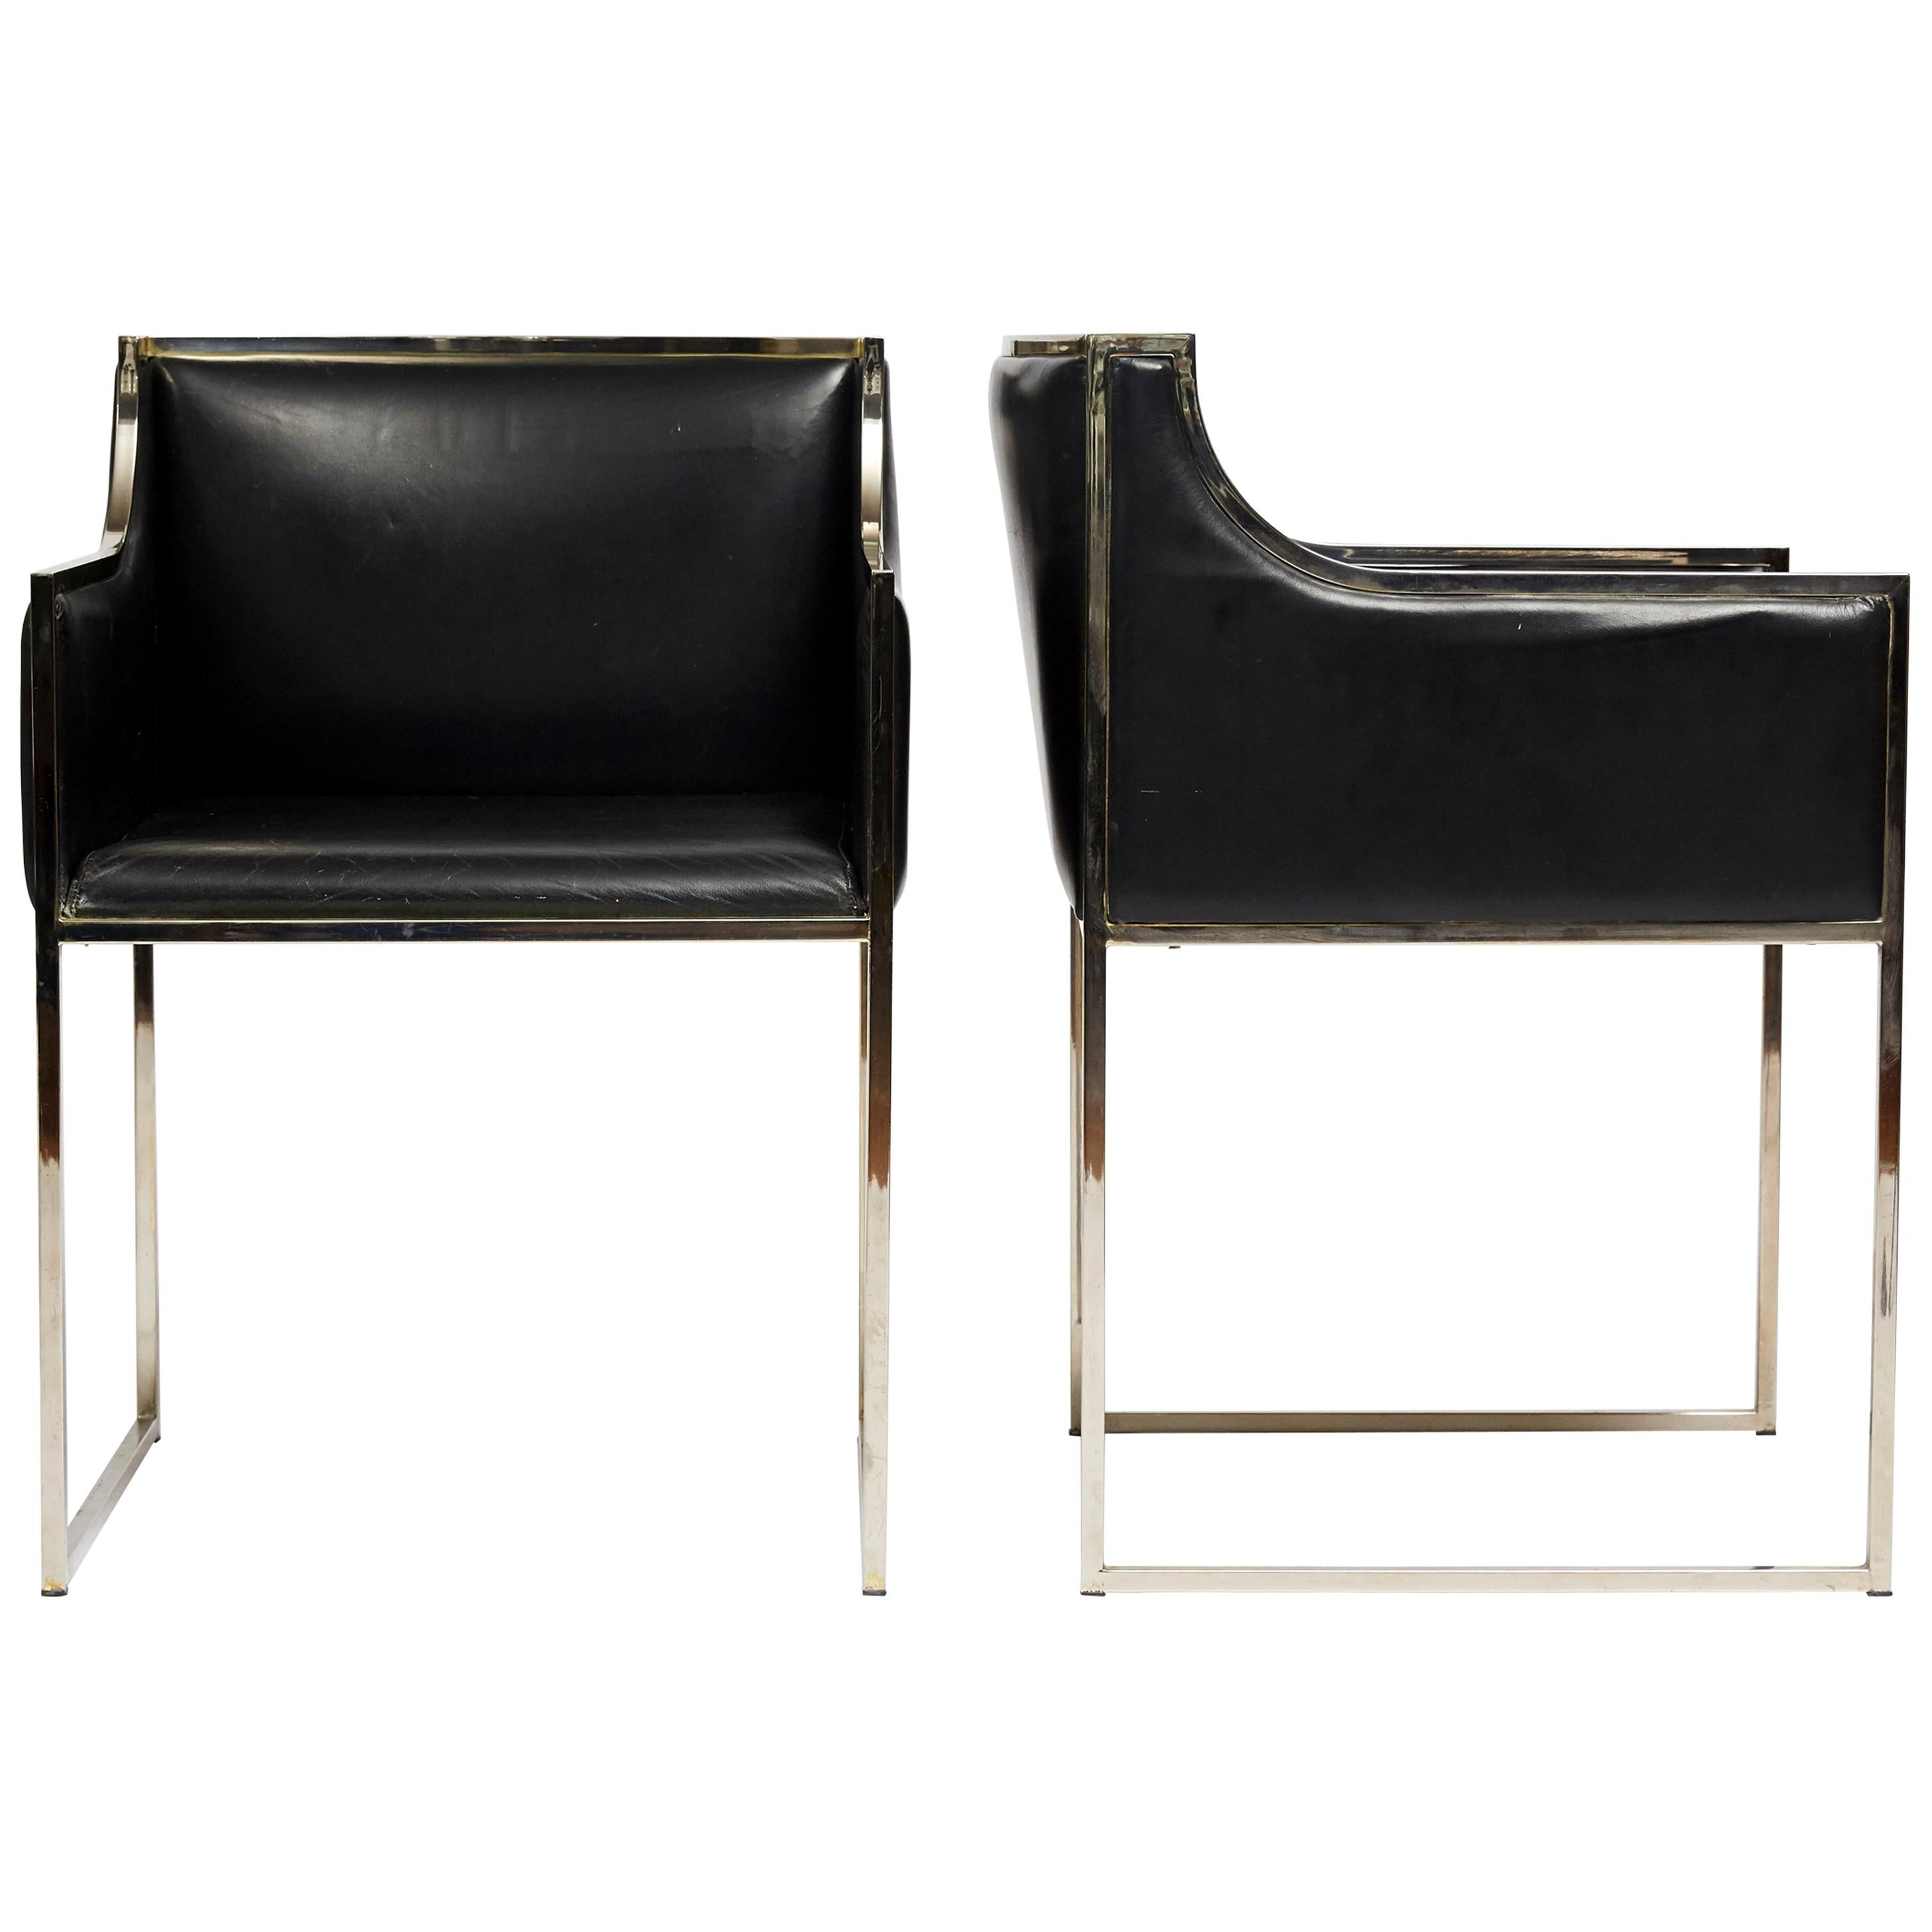 Pair of 1970s Italian Vintage Chairs in Original Black Leather with Chrome Frame